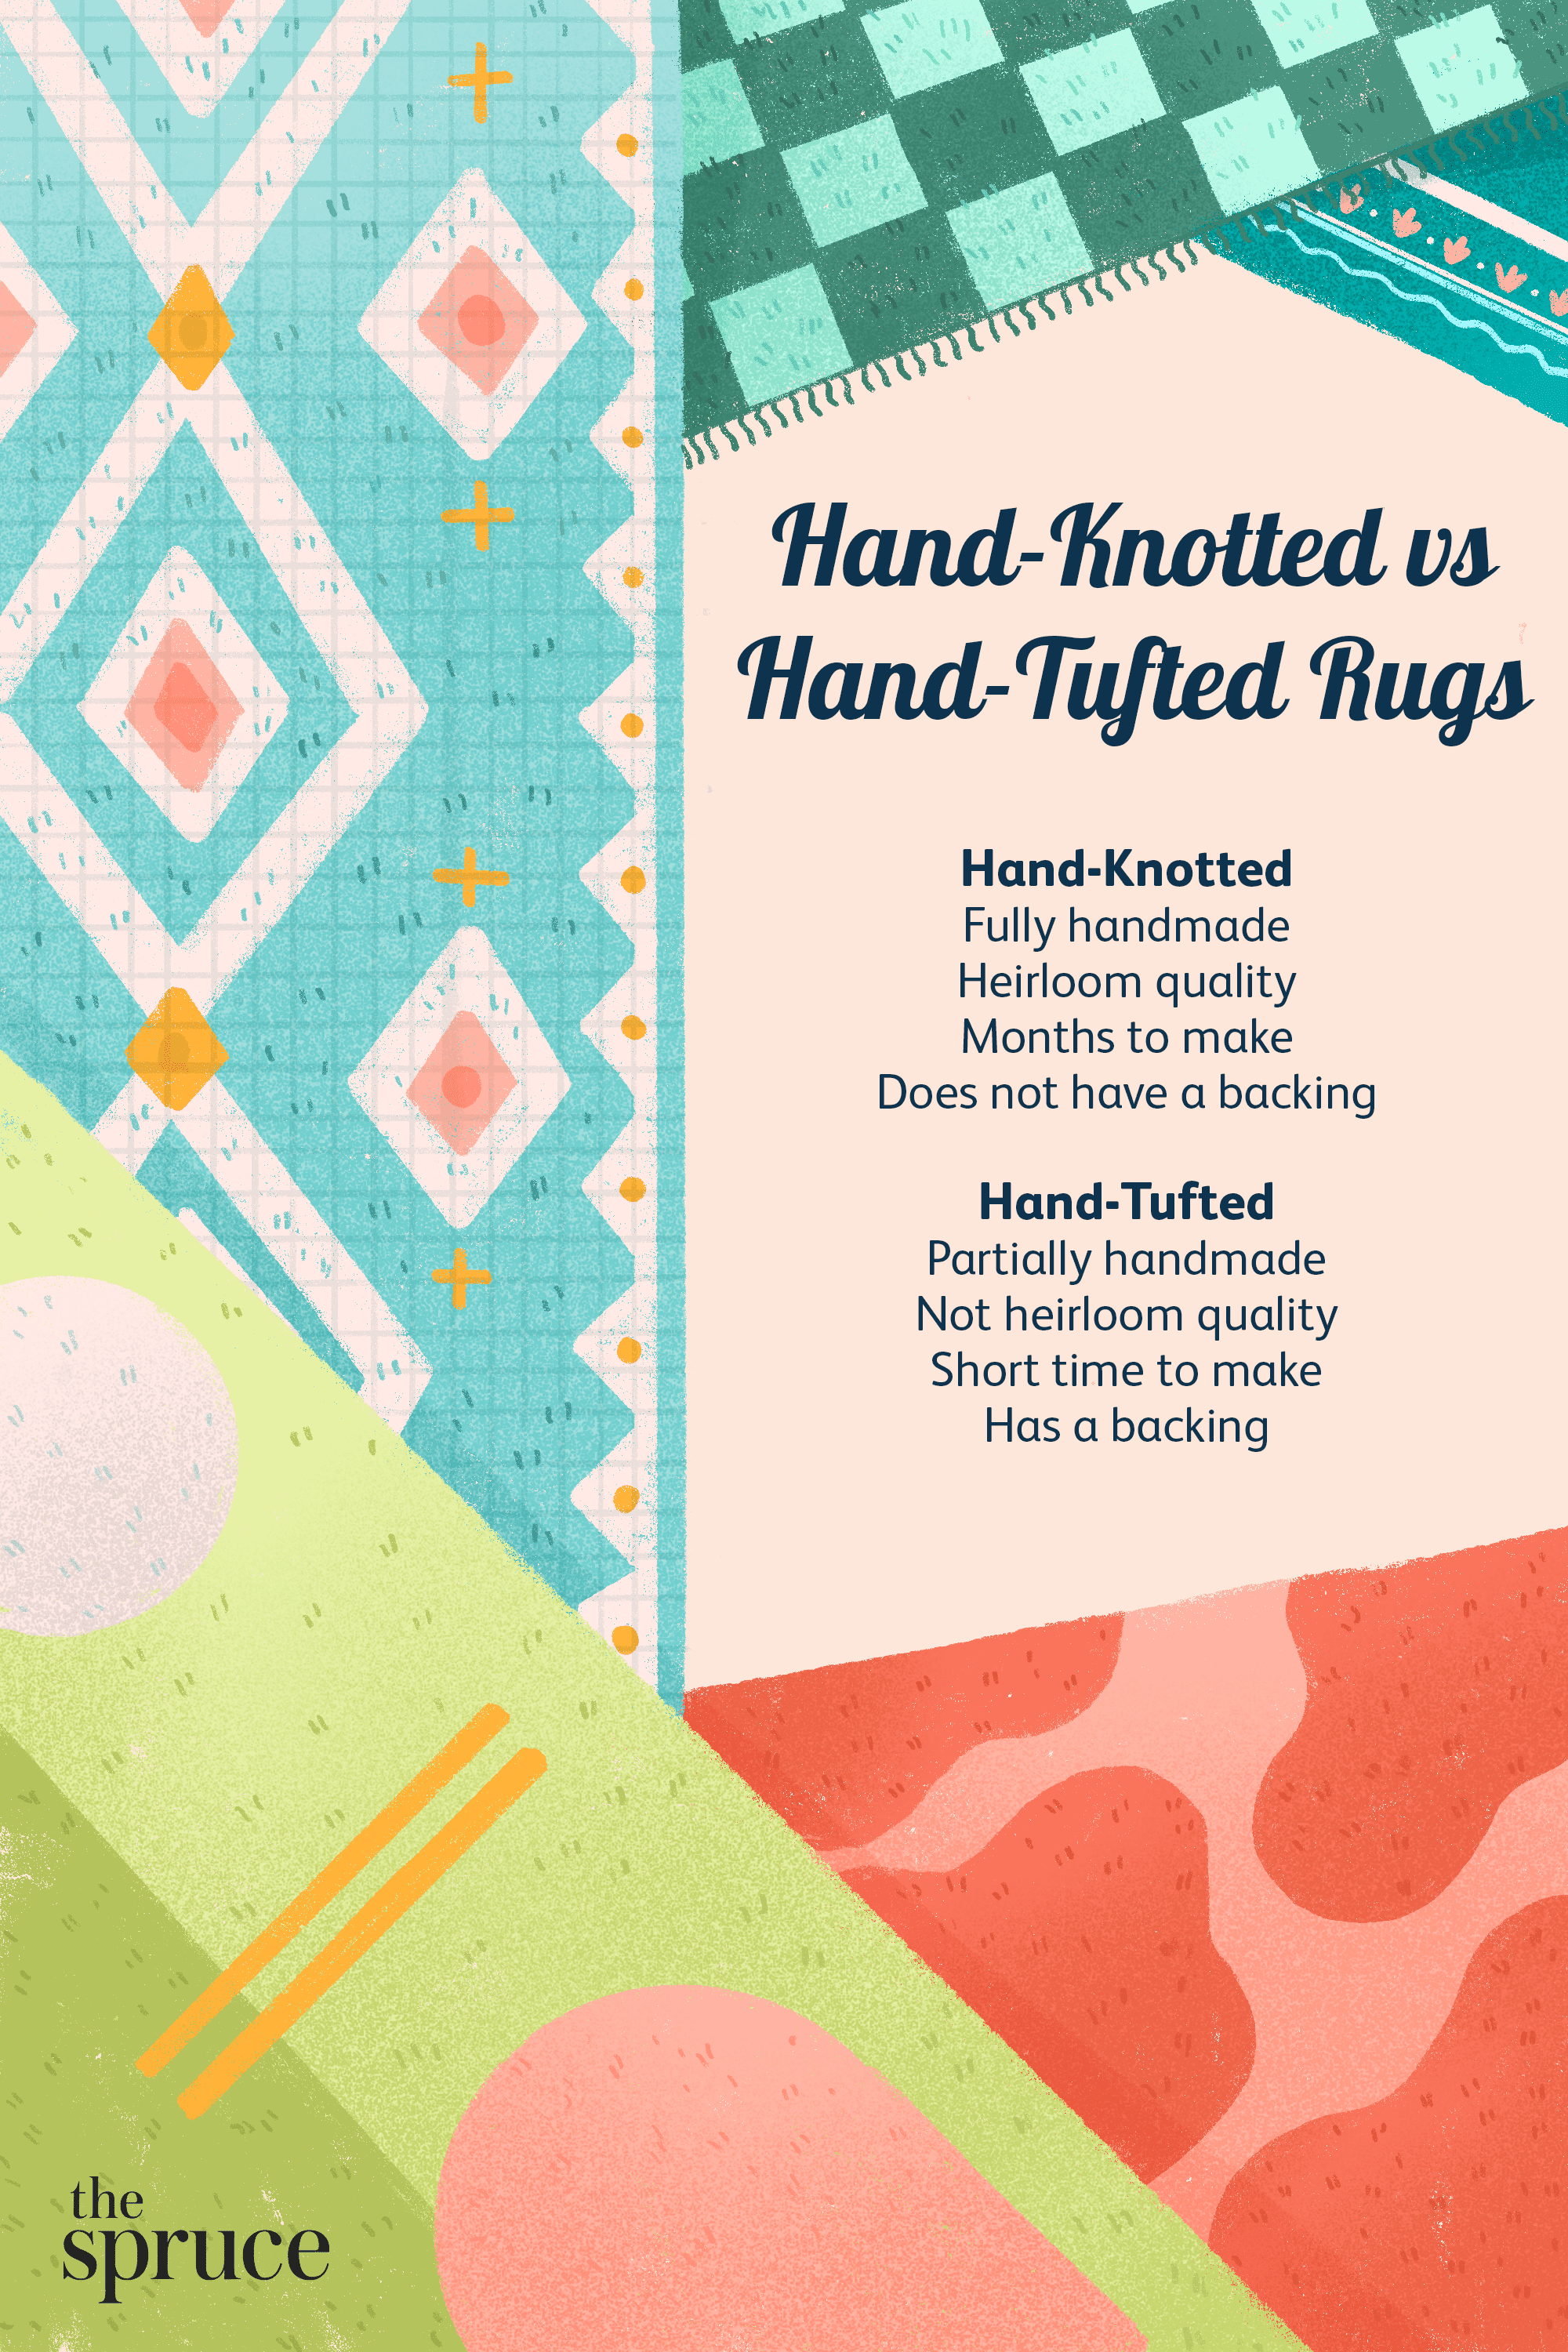 Hand-Knotted vs Hand-Tufted Rugs